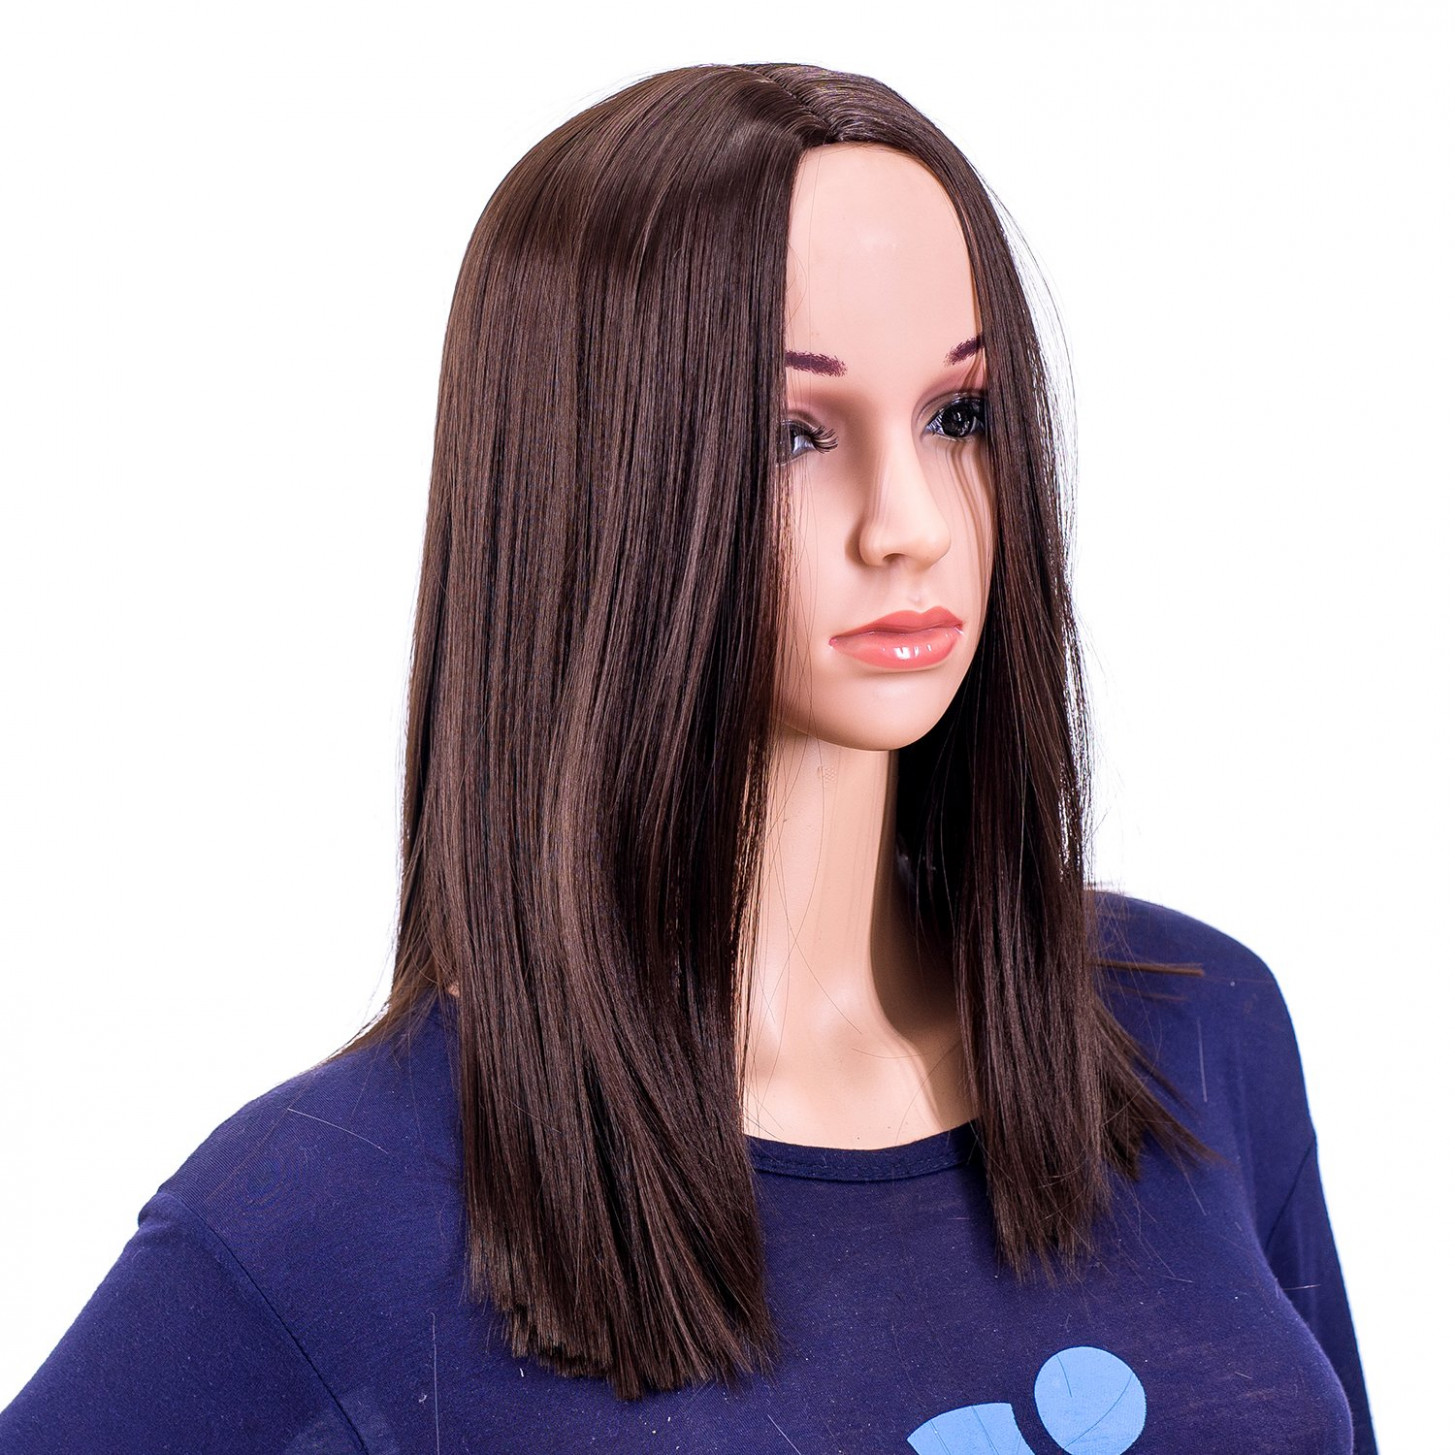 Swacc 9 inch short straight middle part hair wig medium length synthetic heat resistant wigs for women with wig cap (dark brown 9#) medium short straight hair